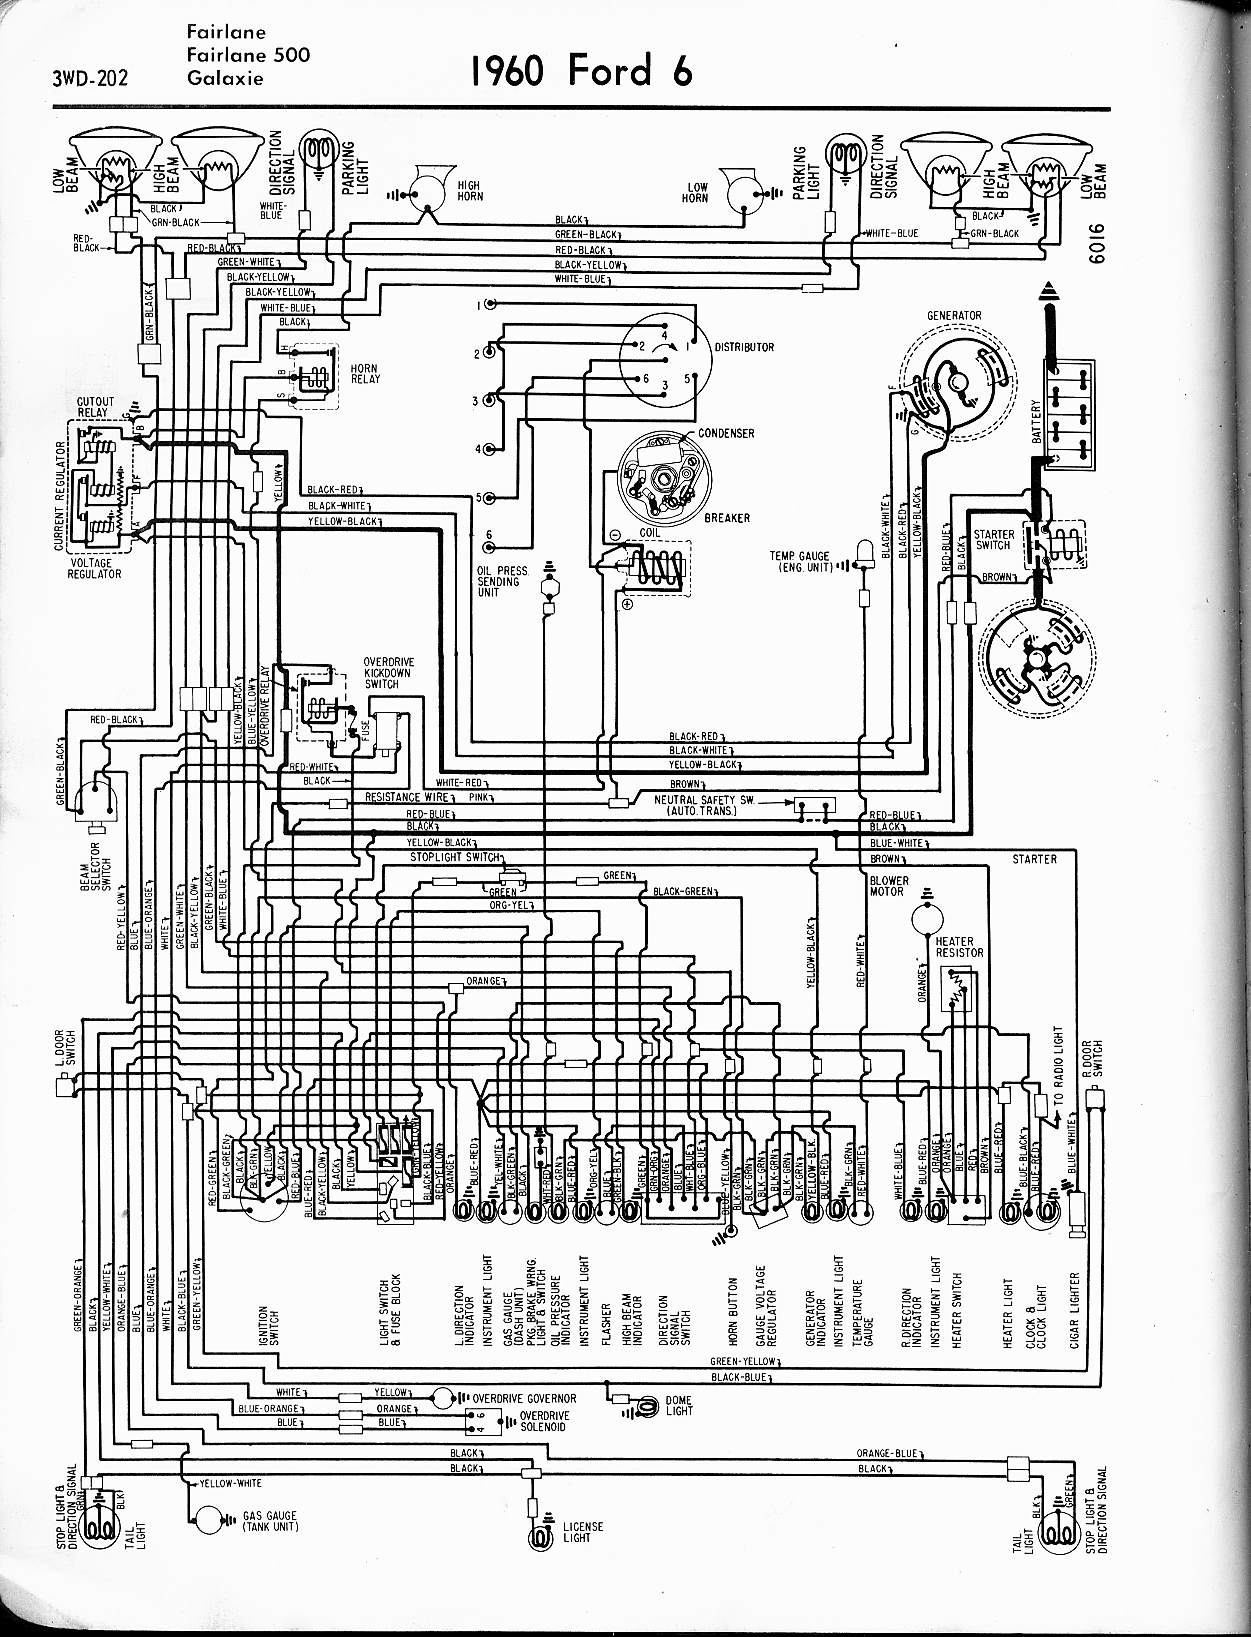 MWire5765 202 57 65 ford wiring diagrams 1965 thunderbird wiring harness at bakdesigns.co